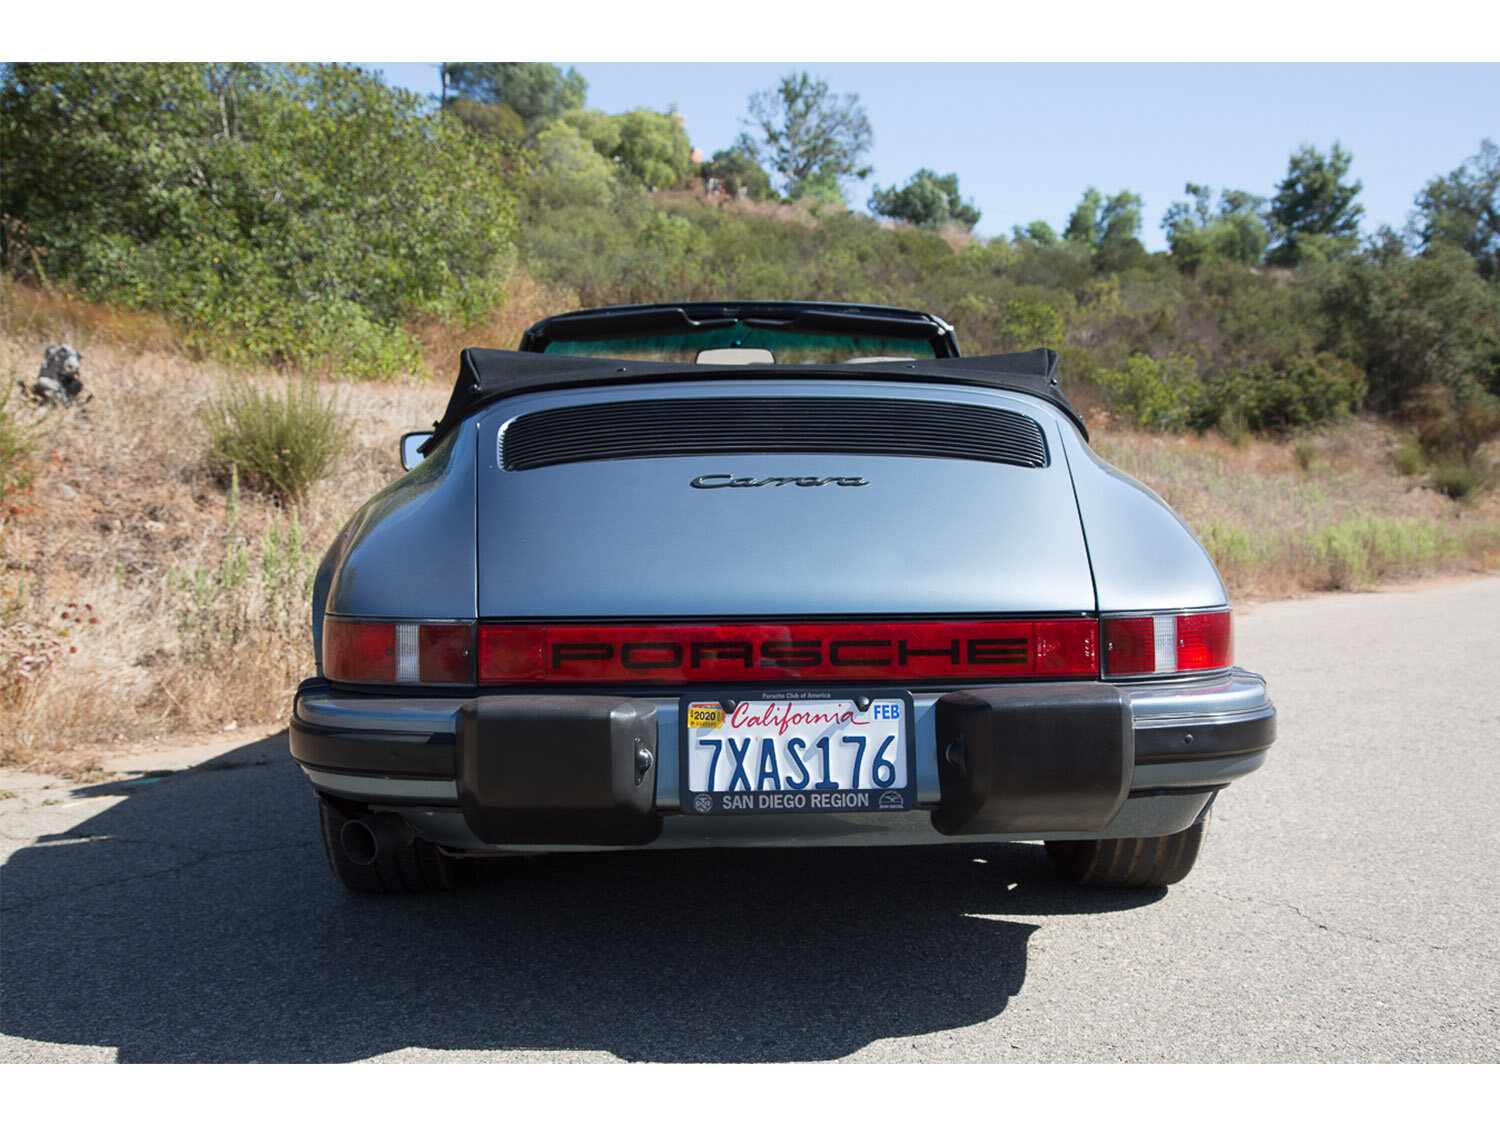 1984-carrera-cabriolet-slate-blue-911-sc-for-sale-makellos-classics_0001s_0000s_0026_1B7A6613.jpg